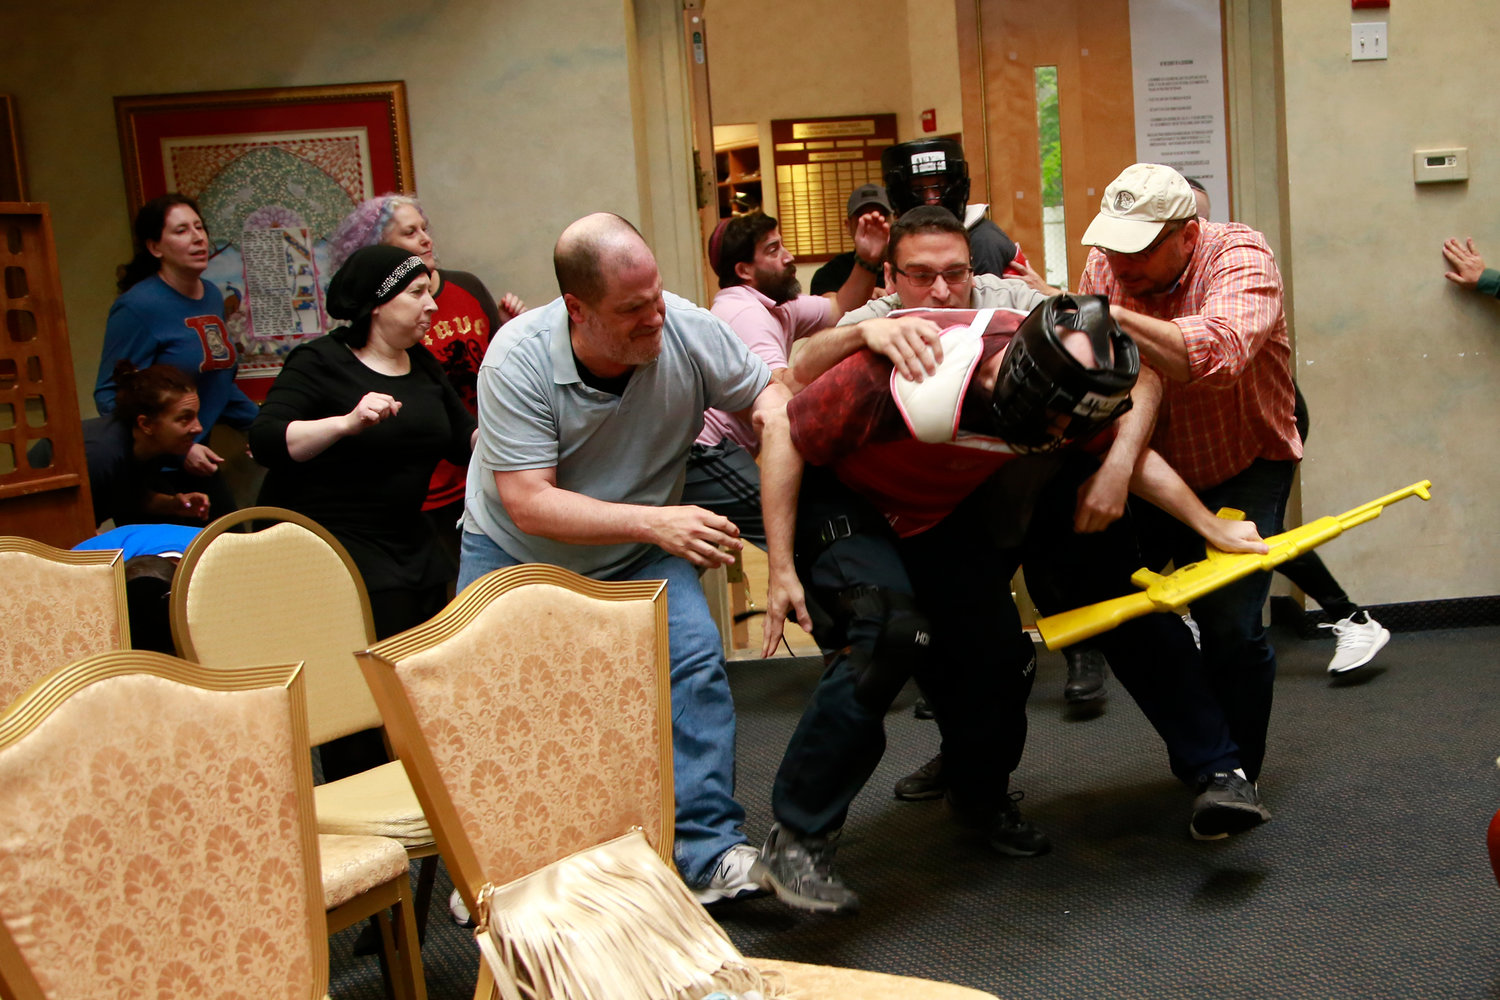 Residents took part in a training simulation that involved a play-acting assailant at Anshei Shalom in West Hempstead on June 16.